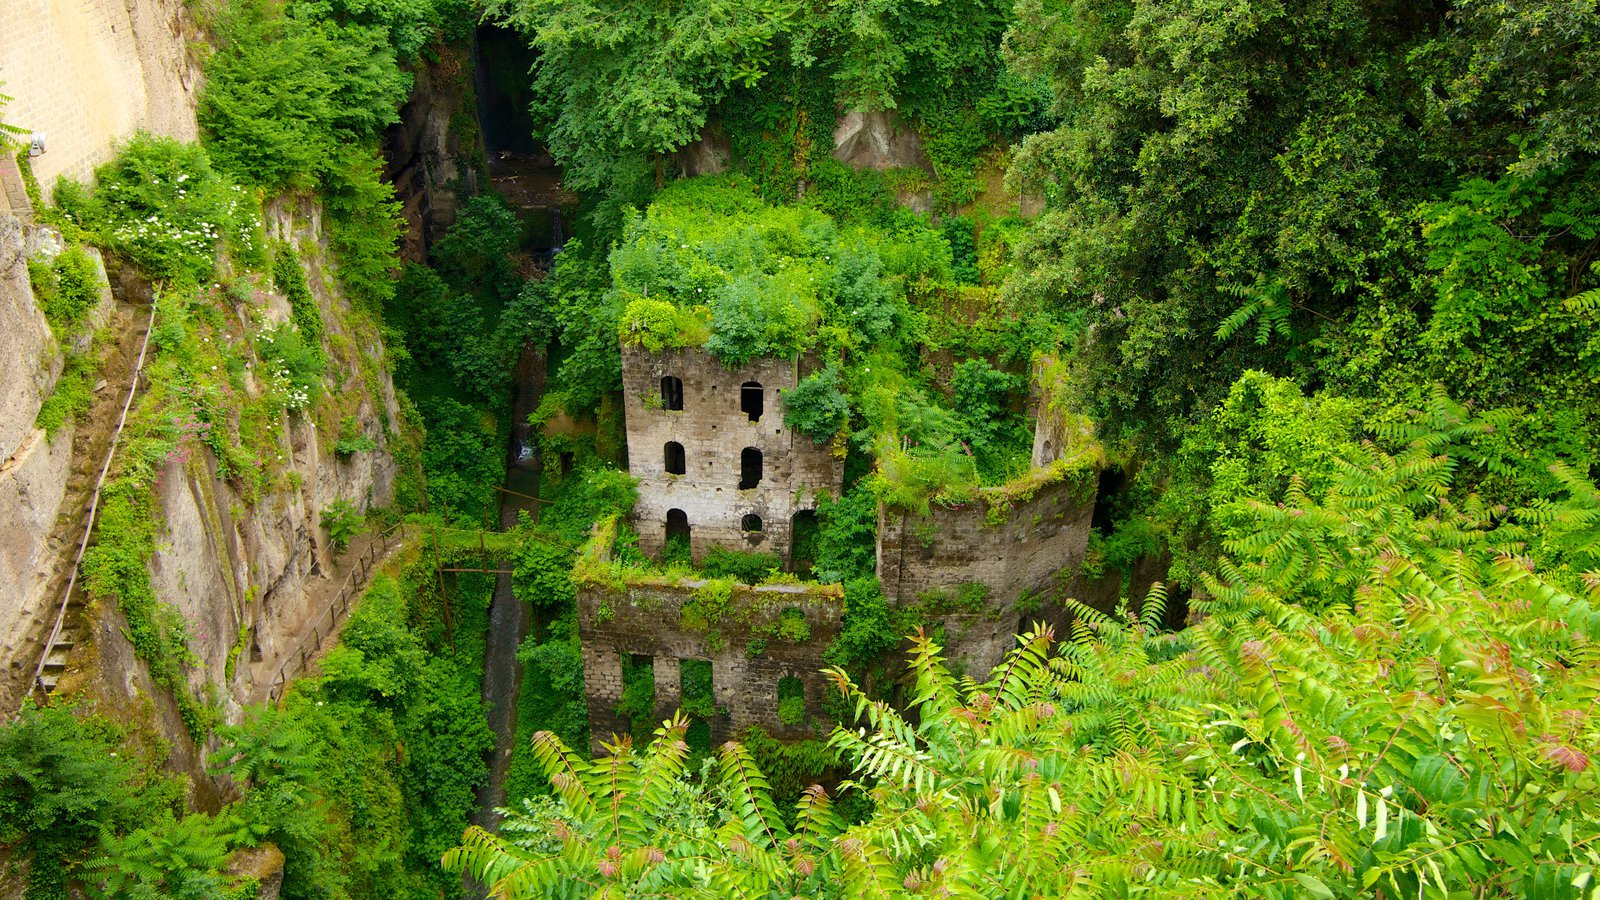 Deep Valley of the Mills which includes heritage architecture, building ruins and landscape views